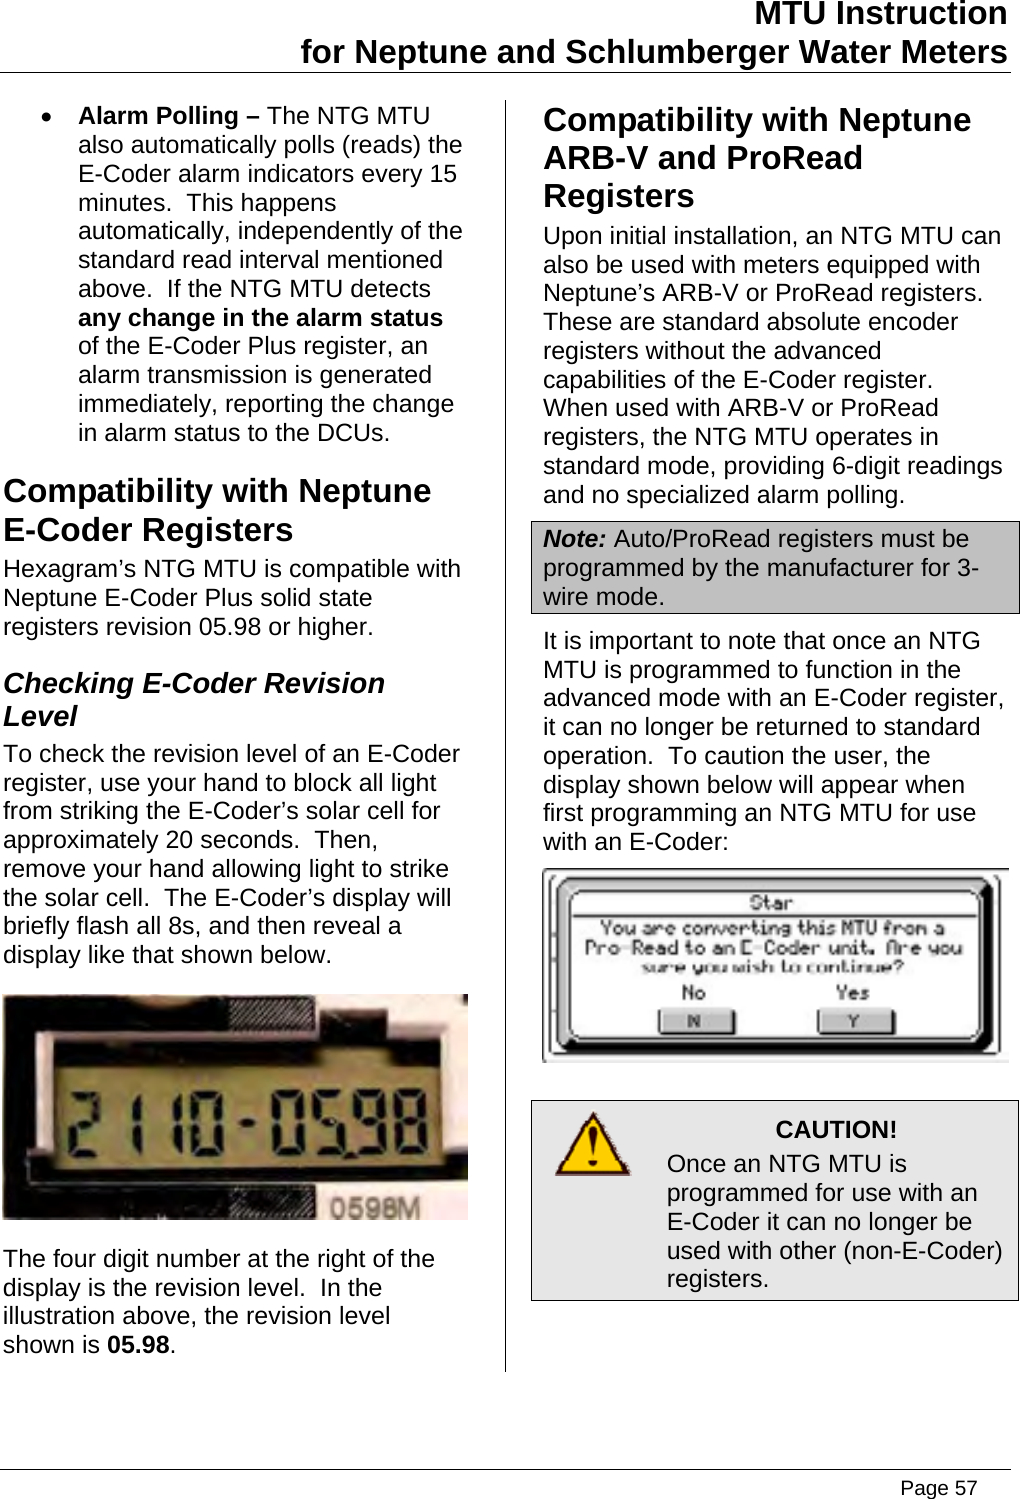 neptune water meter wiring diagram Download-Page 57 of TRANSMITTER FOR METER READING User Manual Installation Instructions Aclara Technologies LLC 2-a